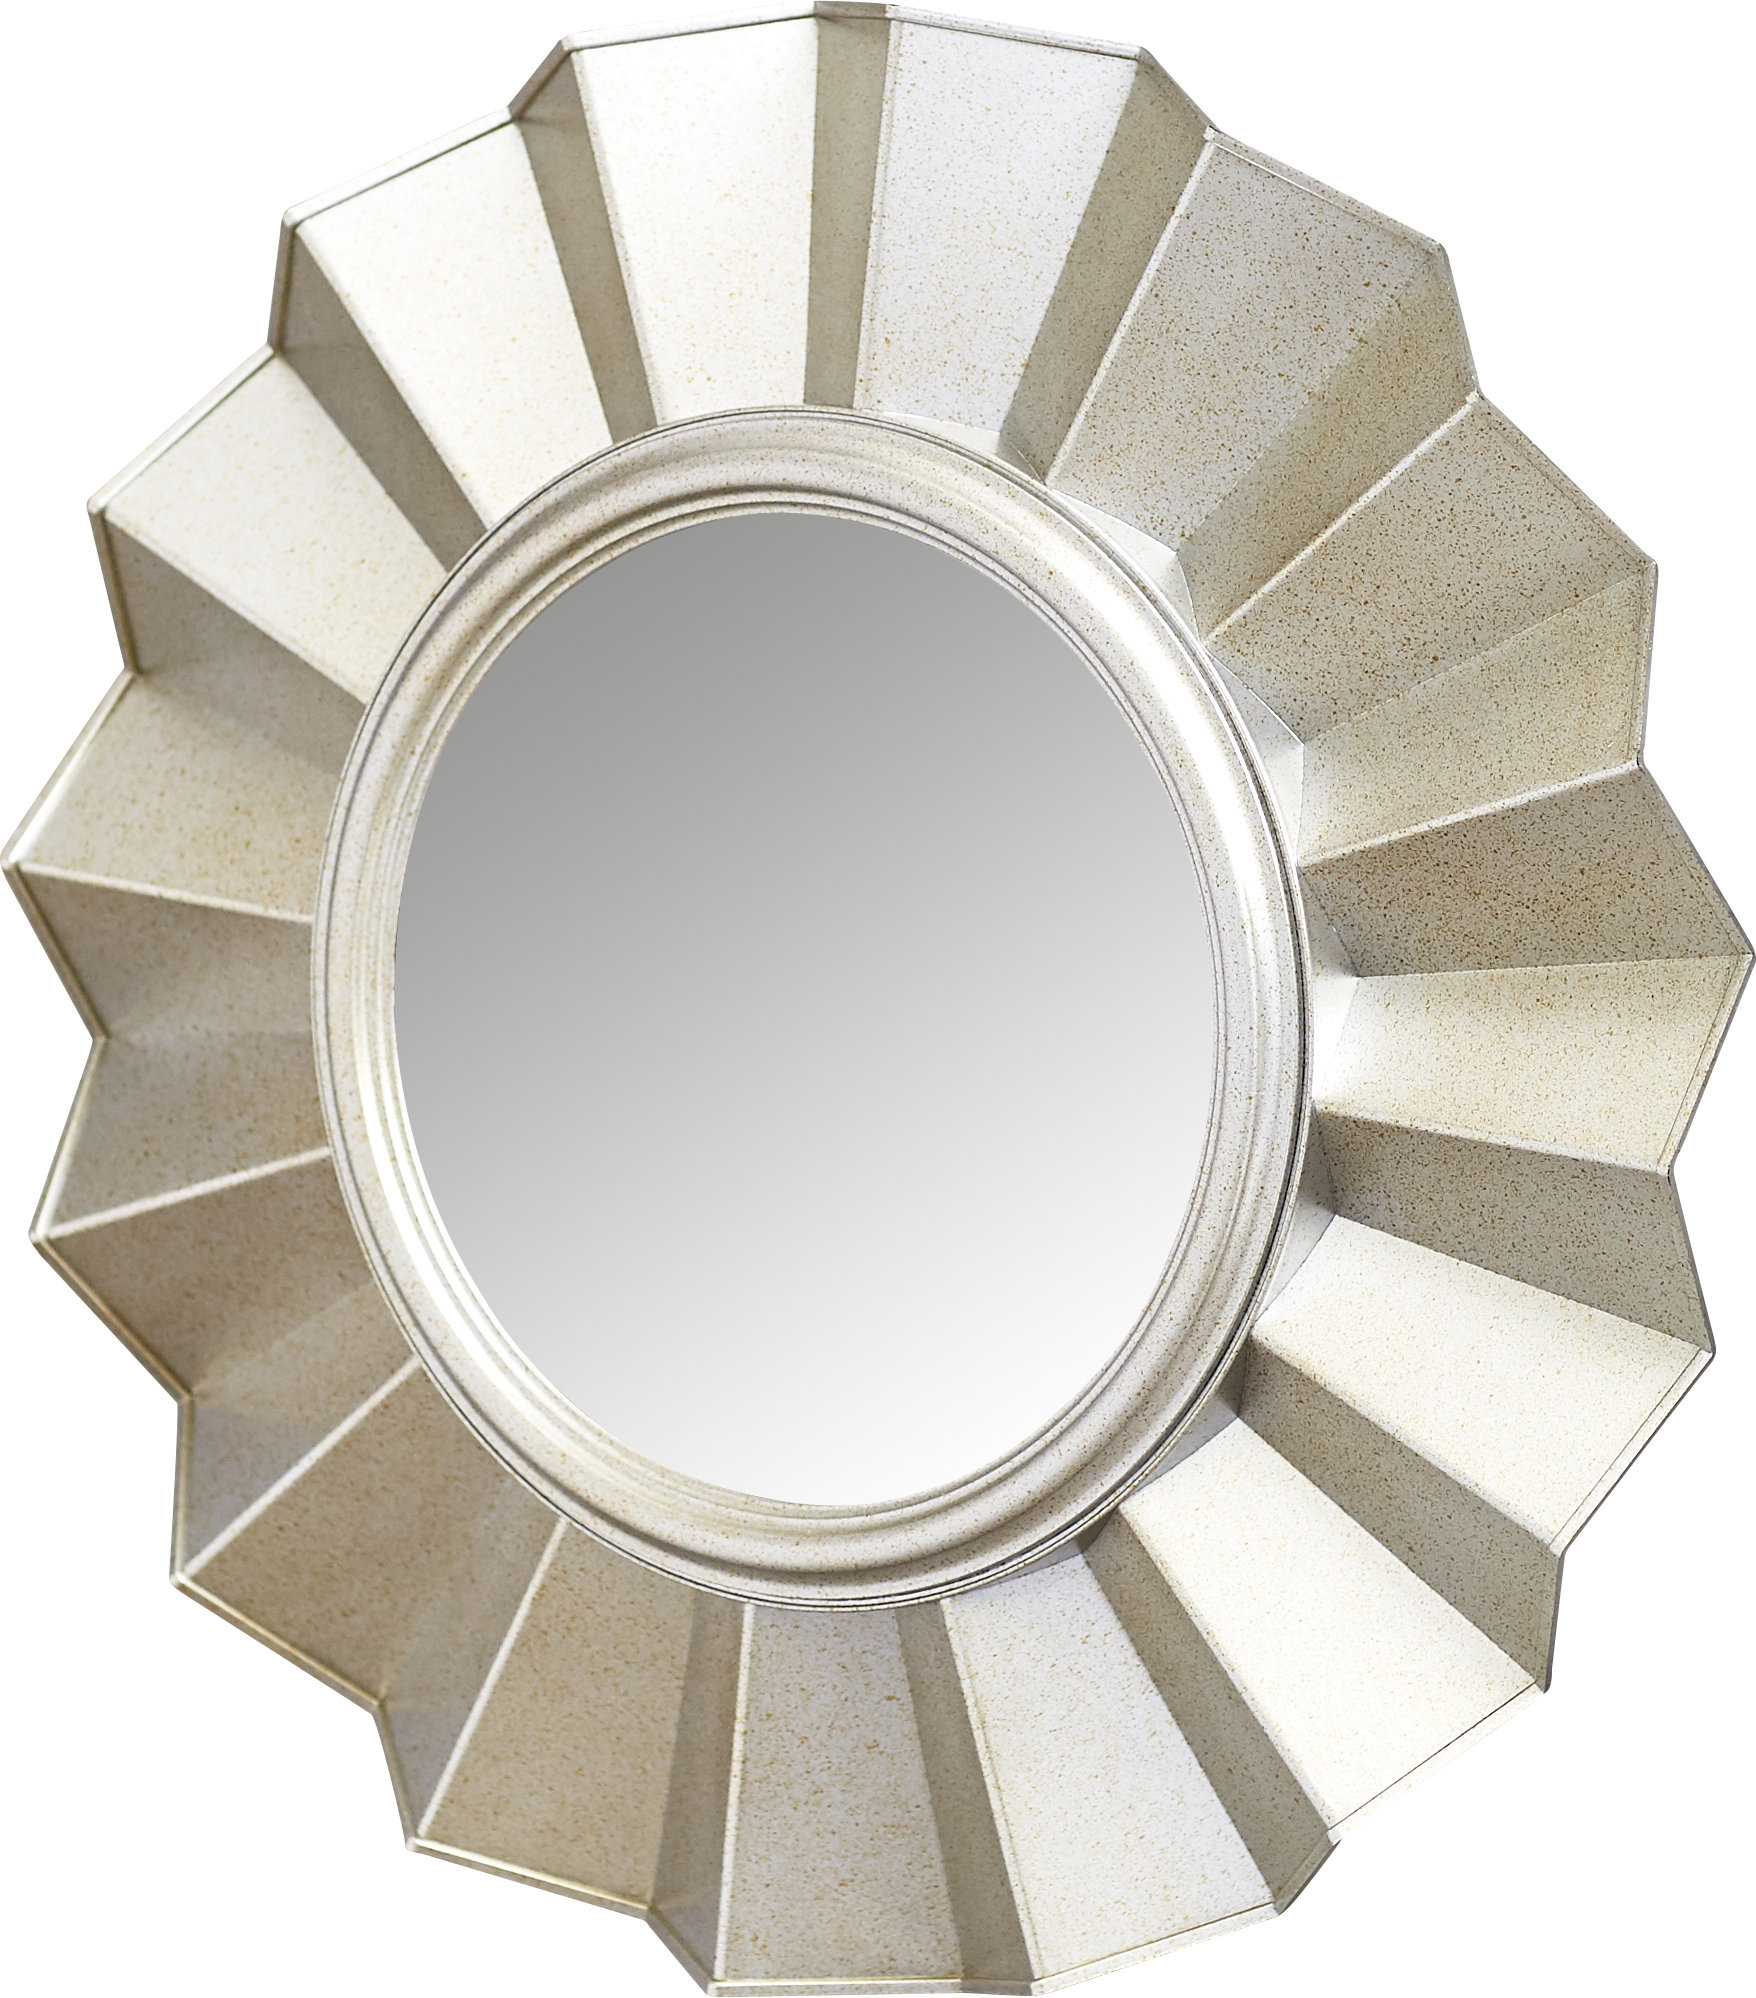 Vertical Round Wall Mirror Within Vertical Round Wall Mirrors (Image 19 of 20)